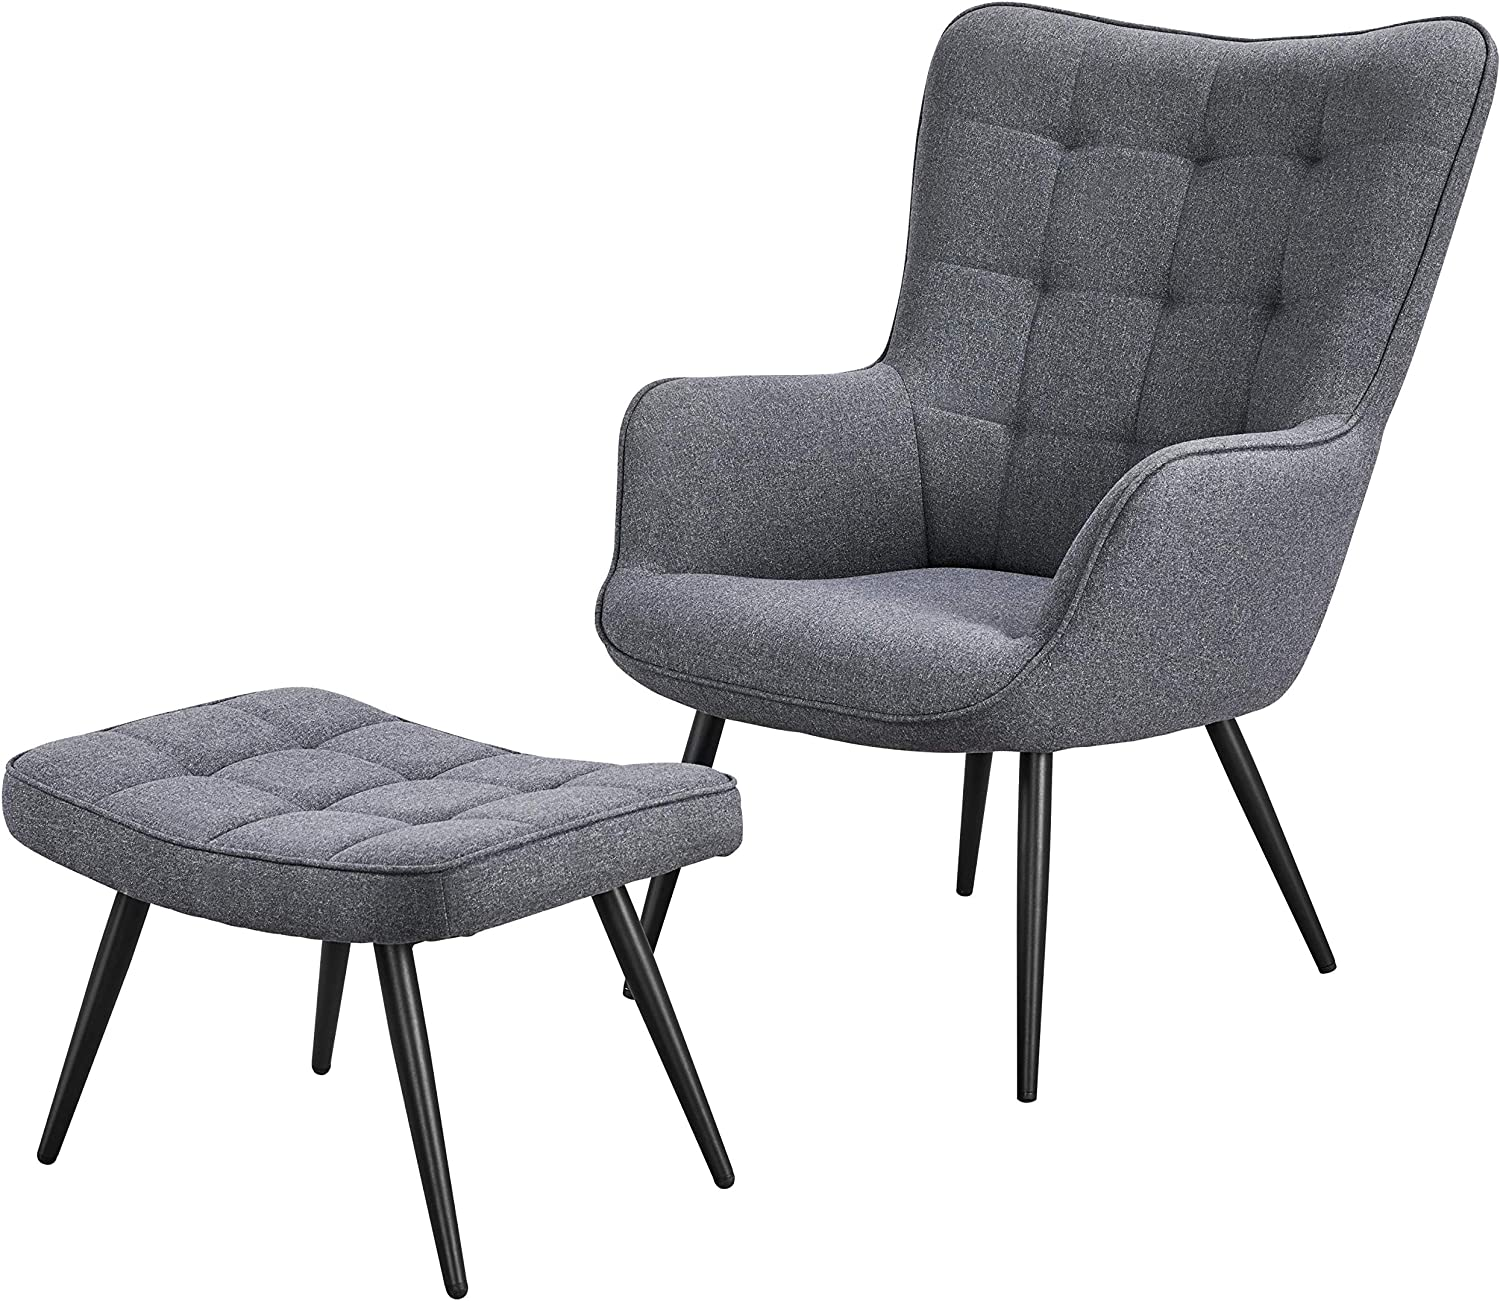 Amazon Com Yaheetech Lounge Chair Ottoman Modern Chaise Lounge Armchair With Footstool Lounge Reading Chair With Footrest Linen Grey Furniture Decor